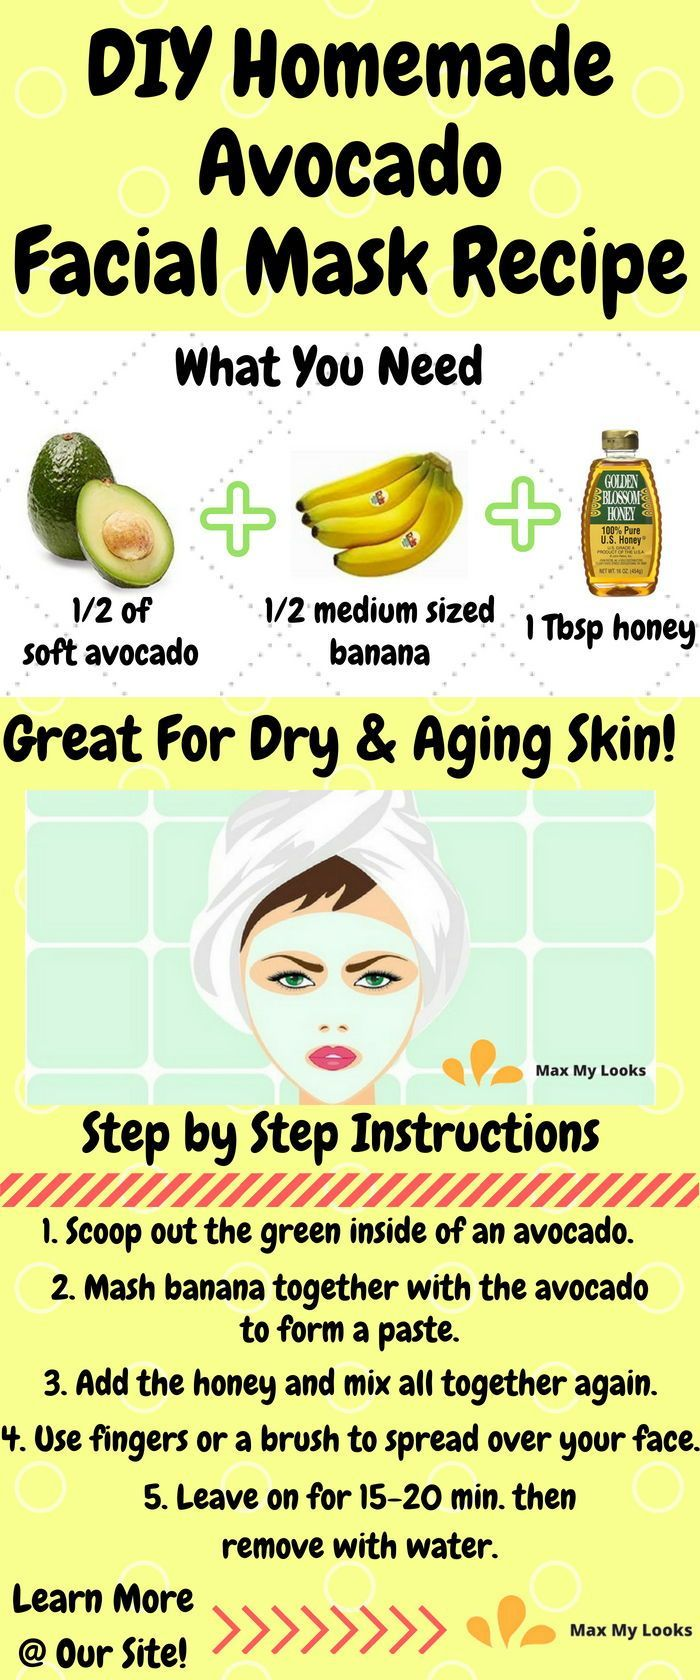 Try This Diy Homemade Avocado Face Mask Recipe It S Perfect For Dry Or Aging Skin In Need Of A Lift A Mask For Dry Skin Avocado Face Mask Homemade Facial Mask